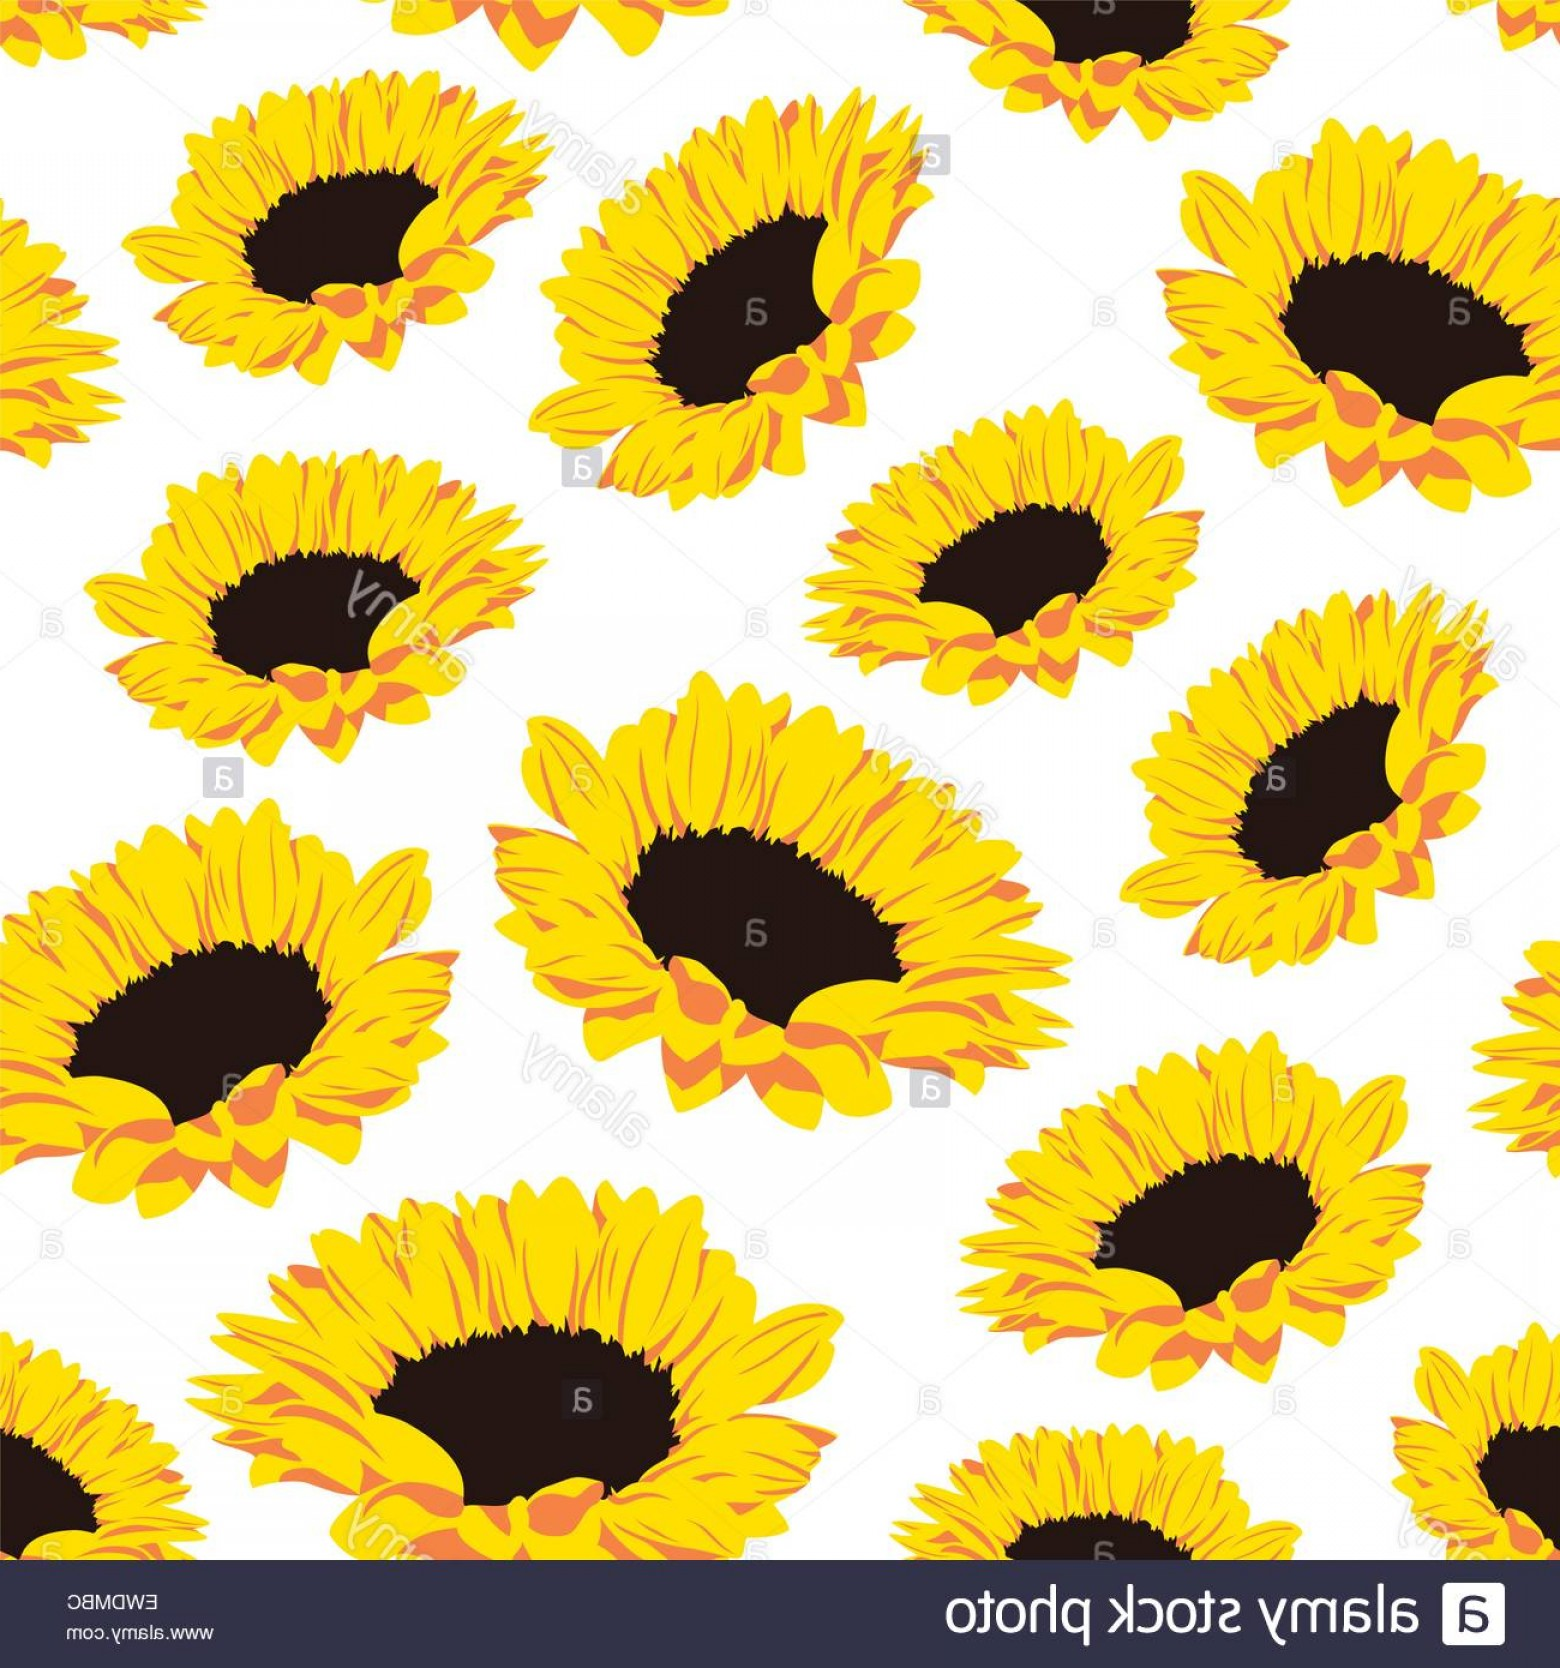 Sunflower Vector Pattern: Stock Photo Seamless Pattern With Sunflowers On White Background Vector Eps